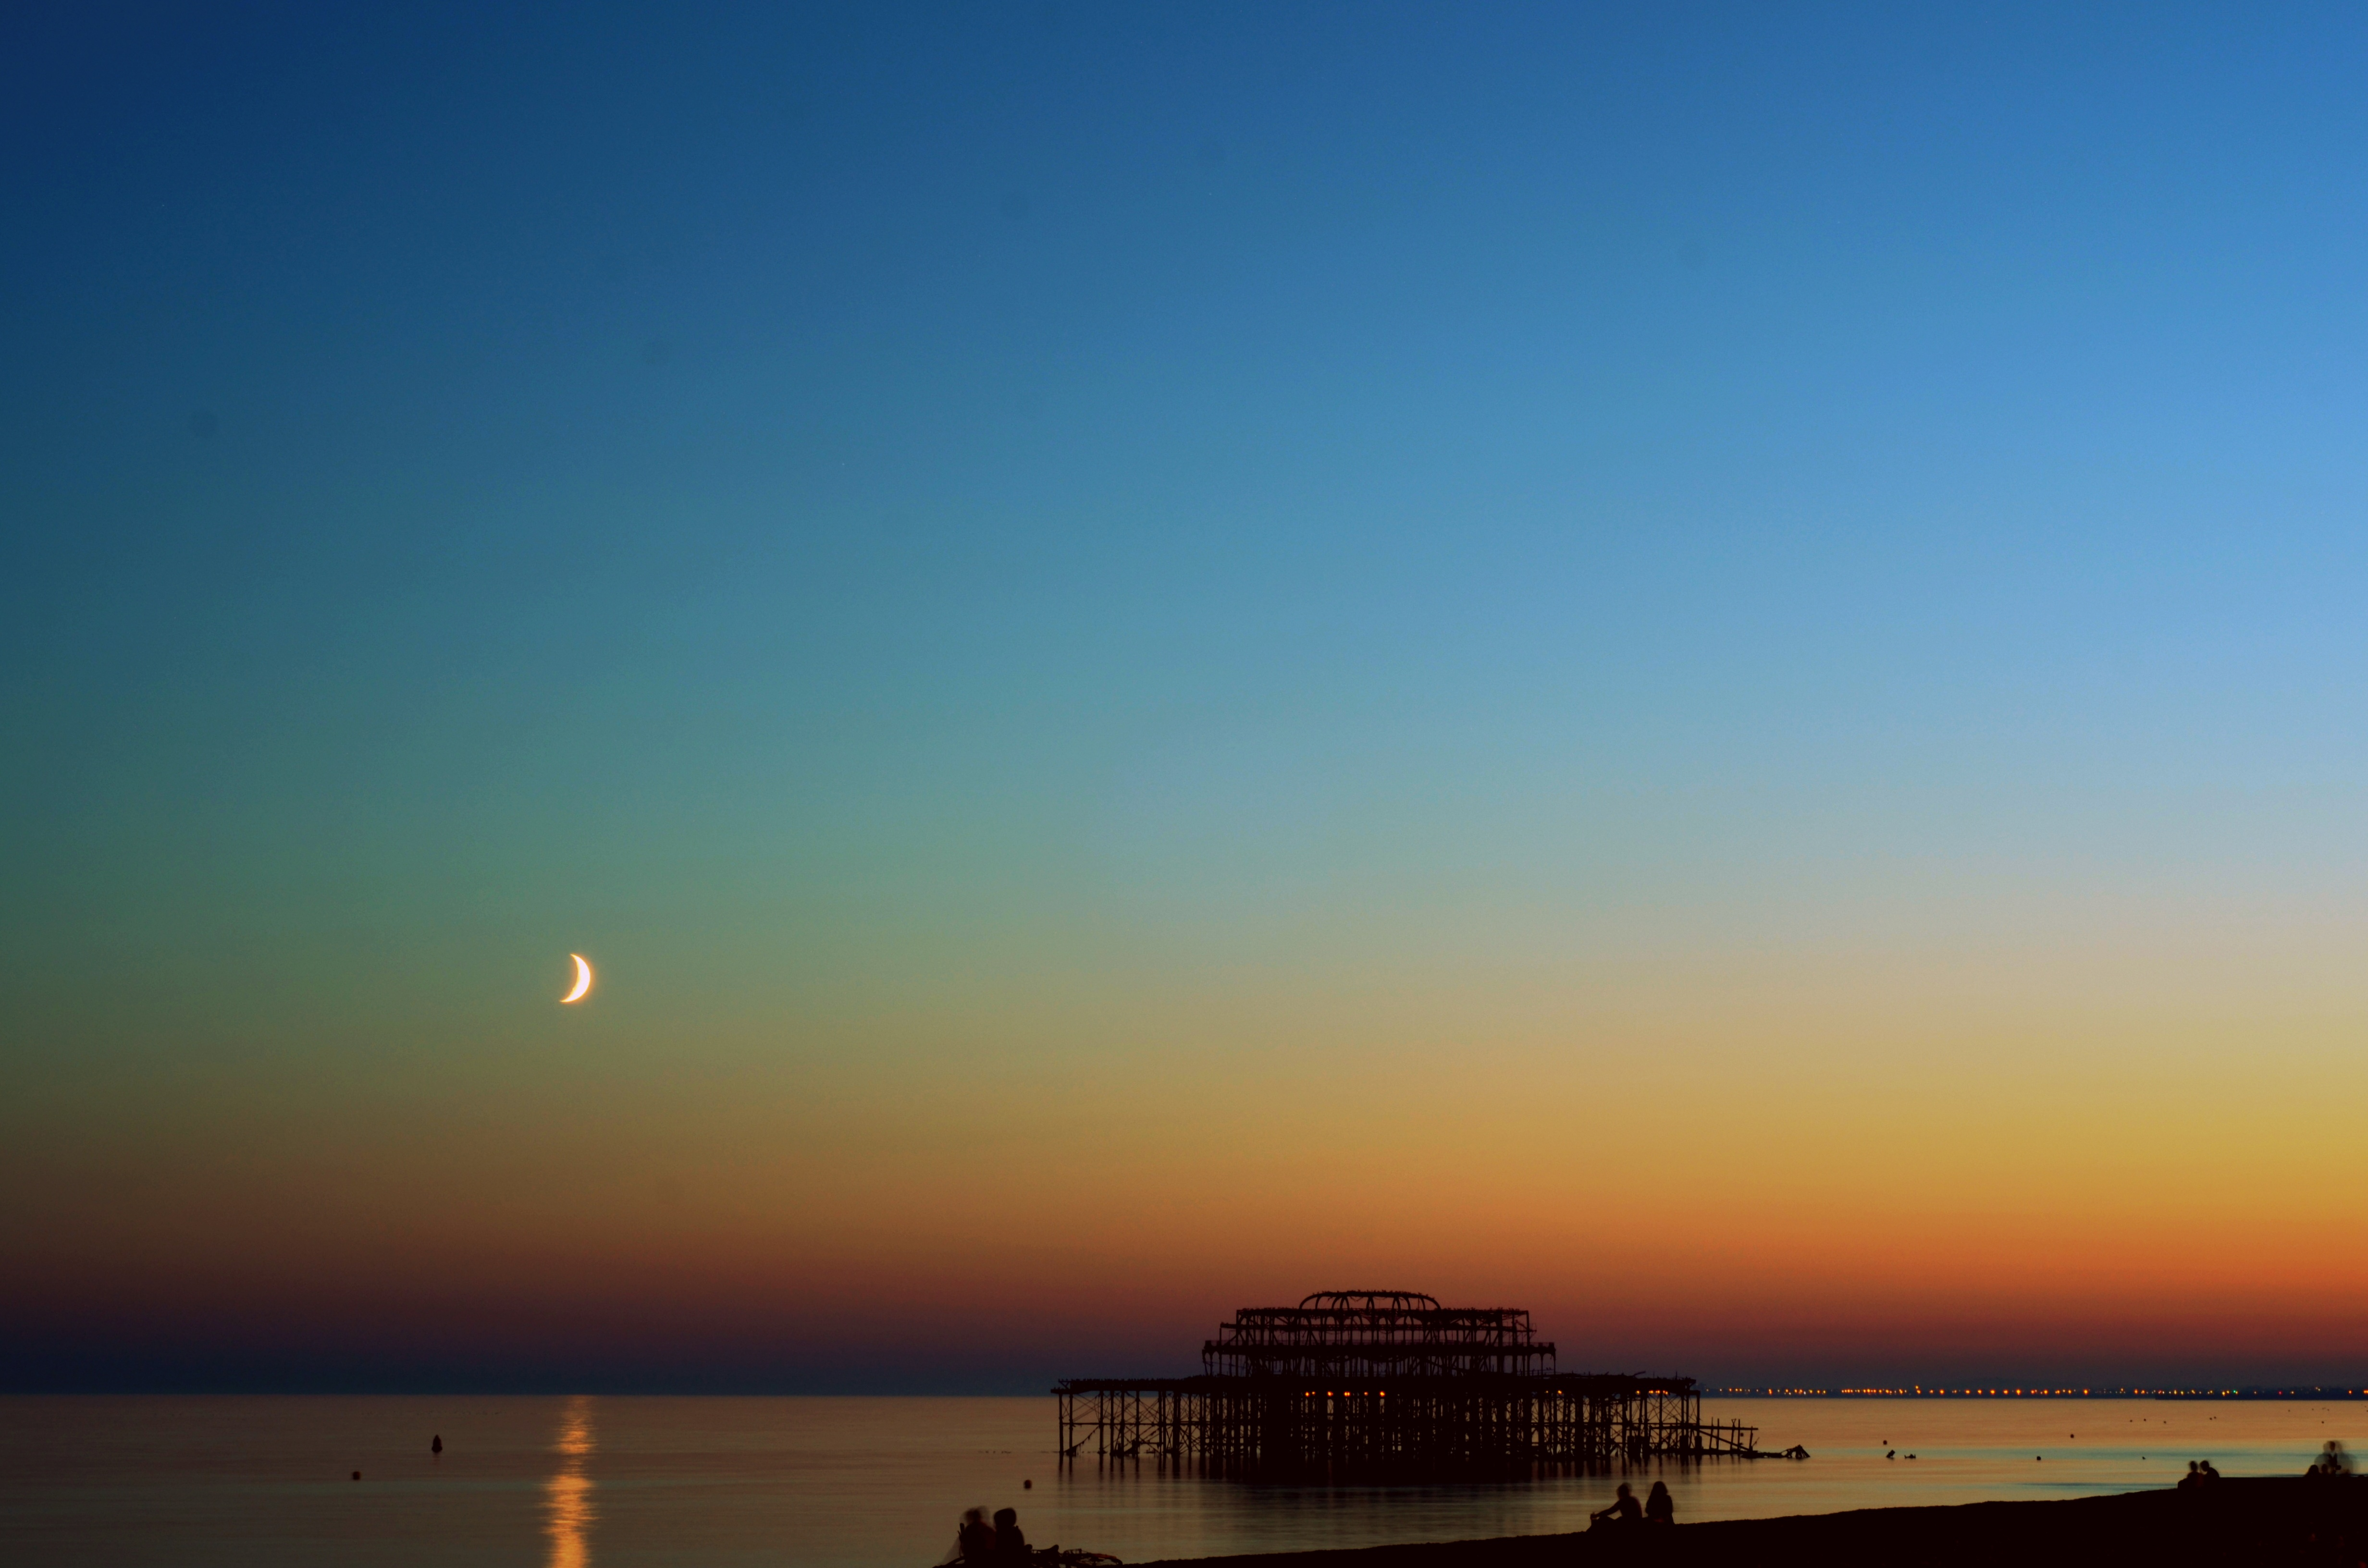 Just after sunset looking over the West Pier, Brighton